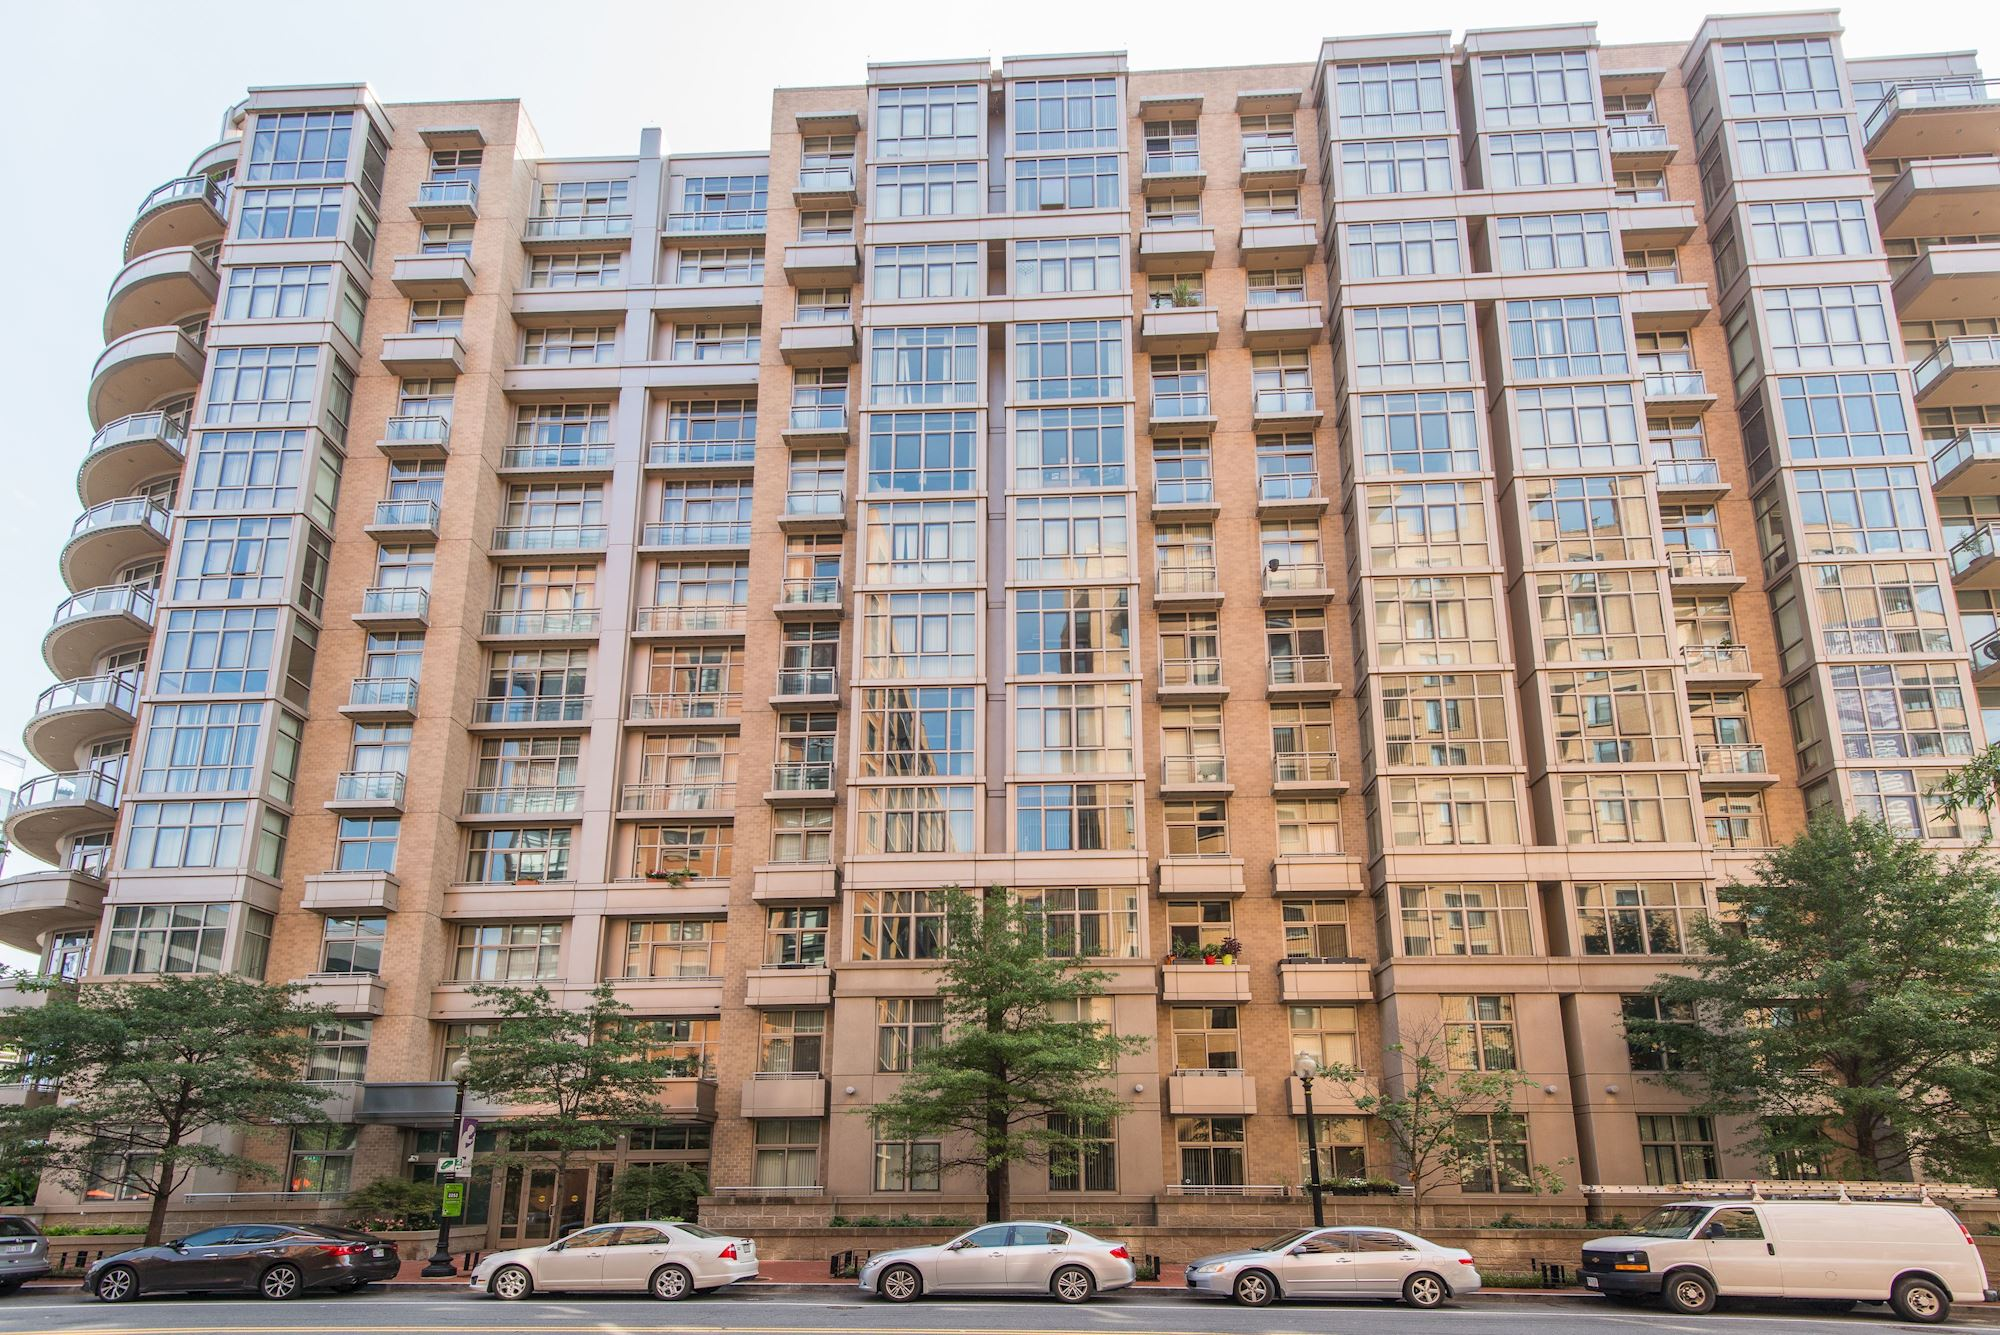 NEW LISTING: City Living in 1 BD Mount Vernon Triangle Loft